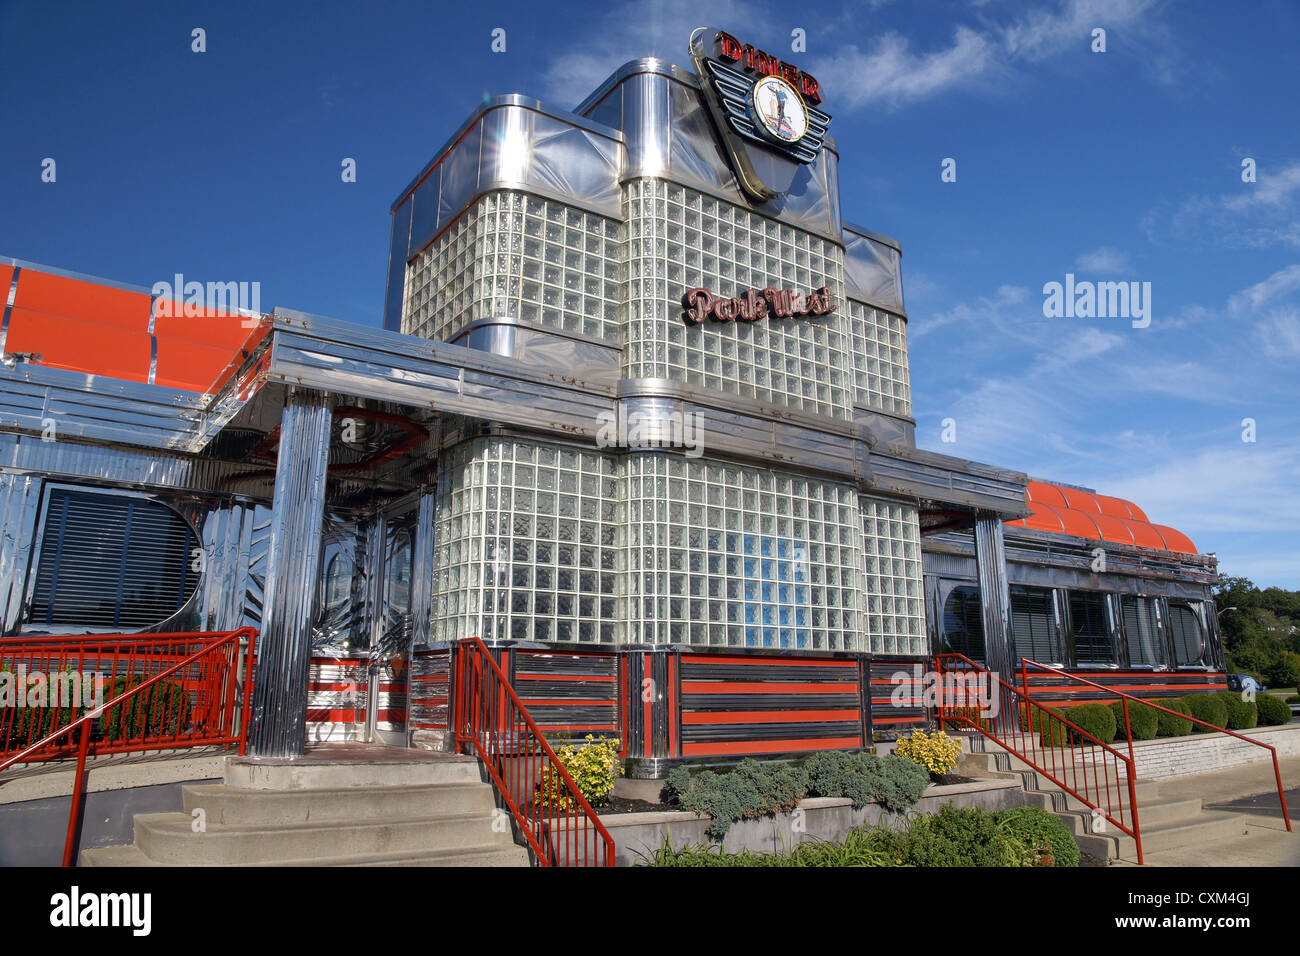 The iconic art deco style Park West diner a well known traditional American restaurant with its polished chrome Stock Photo